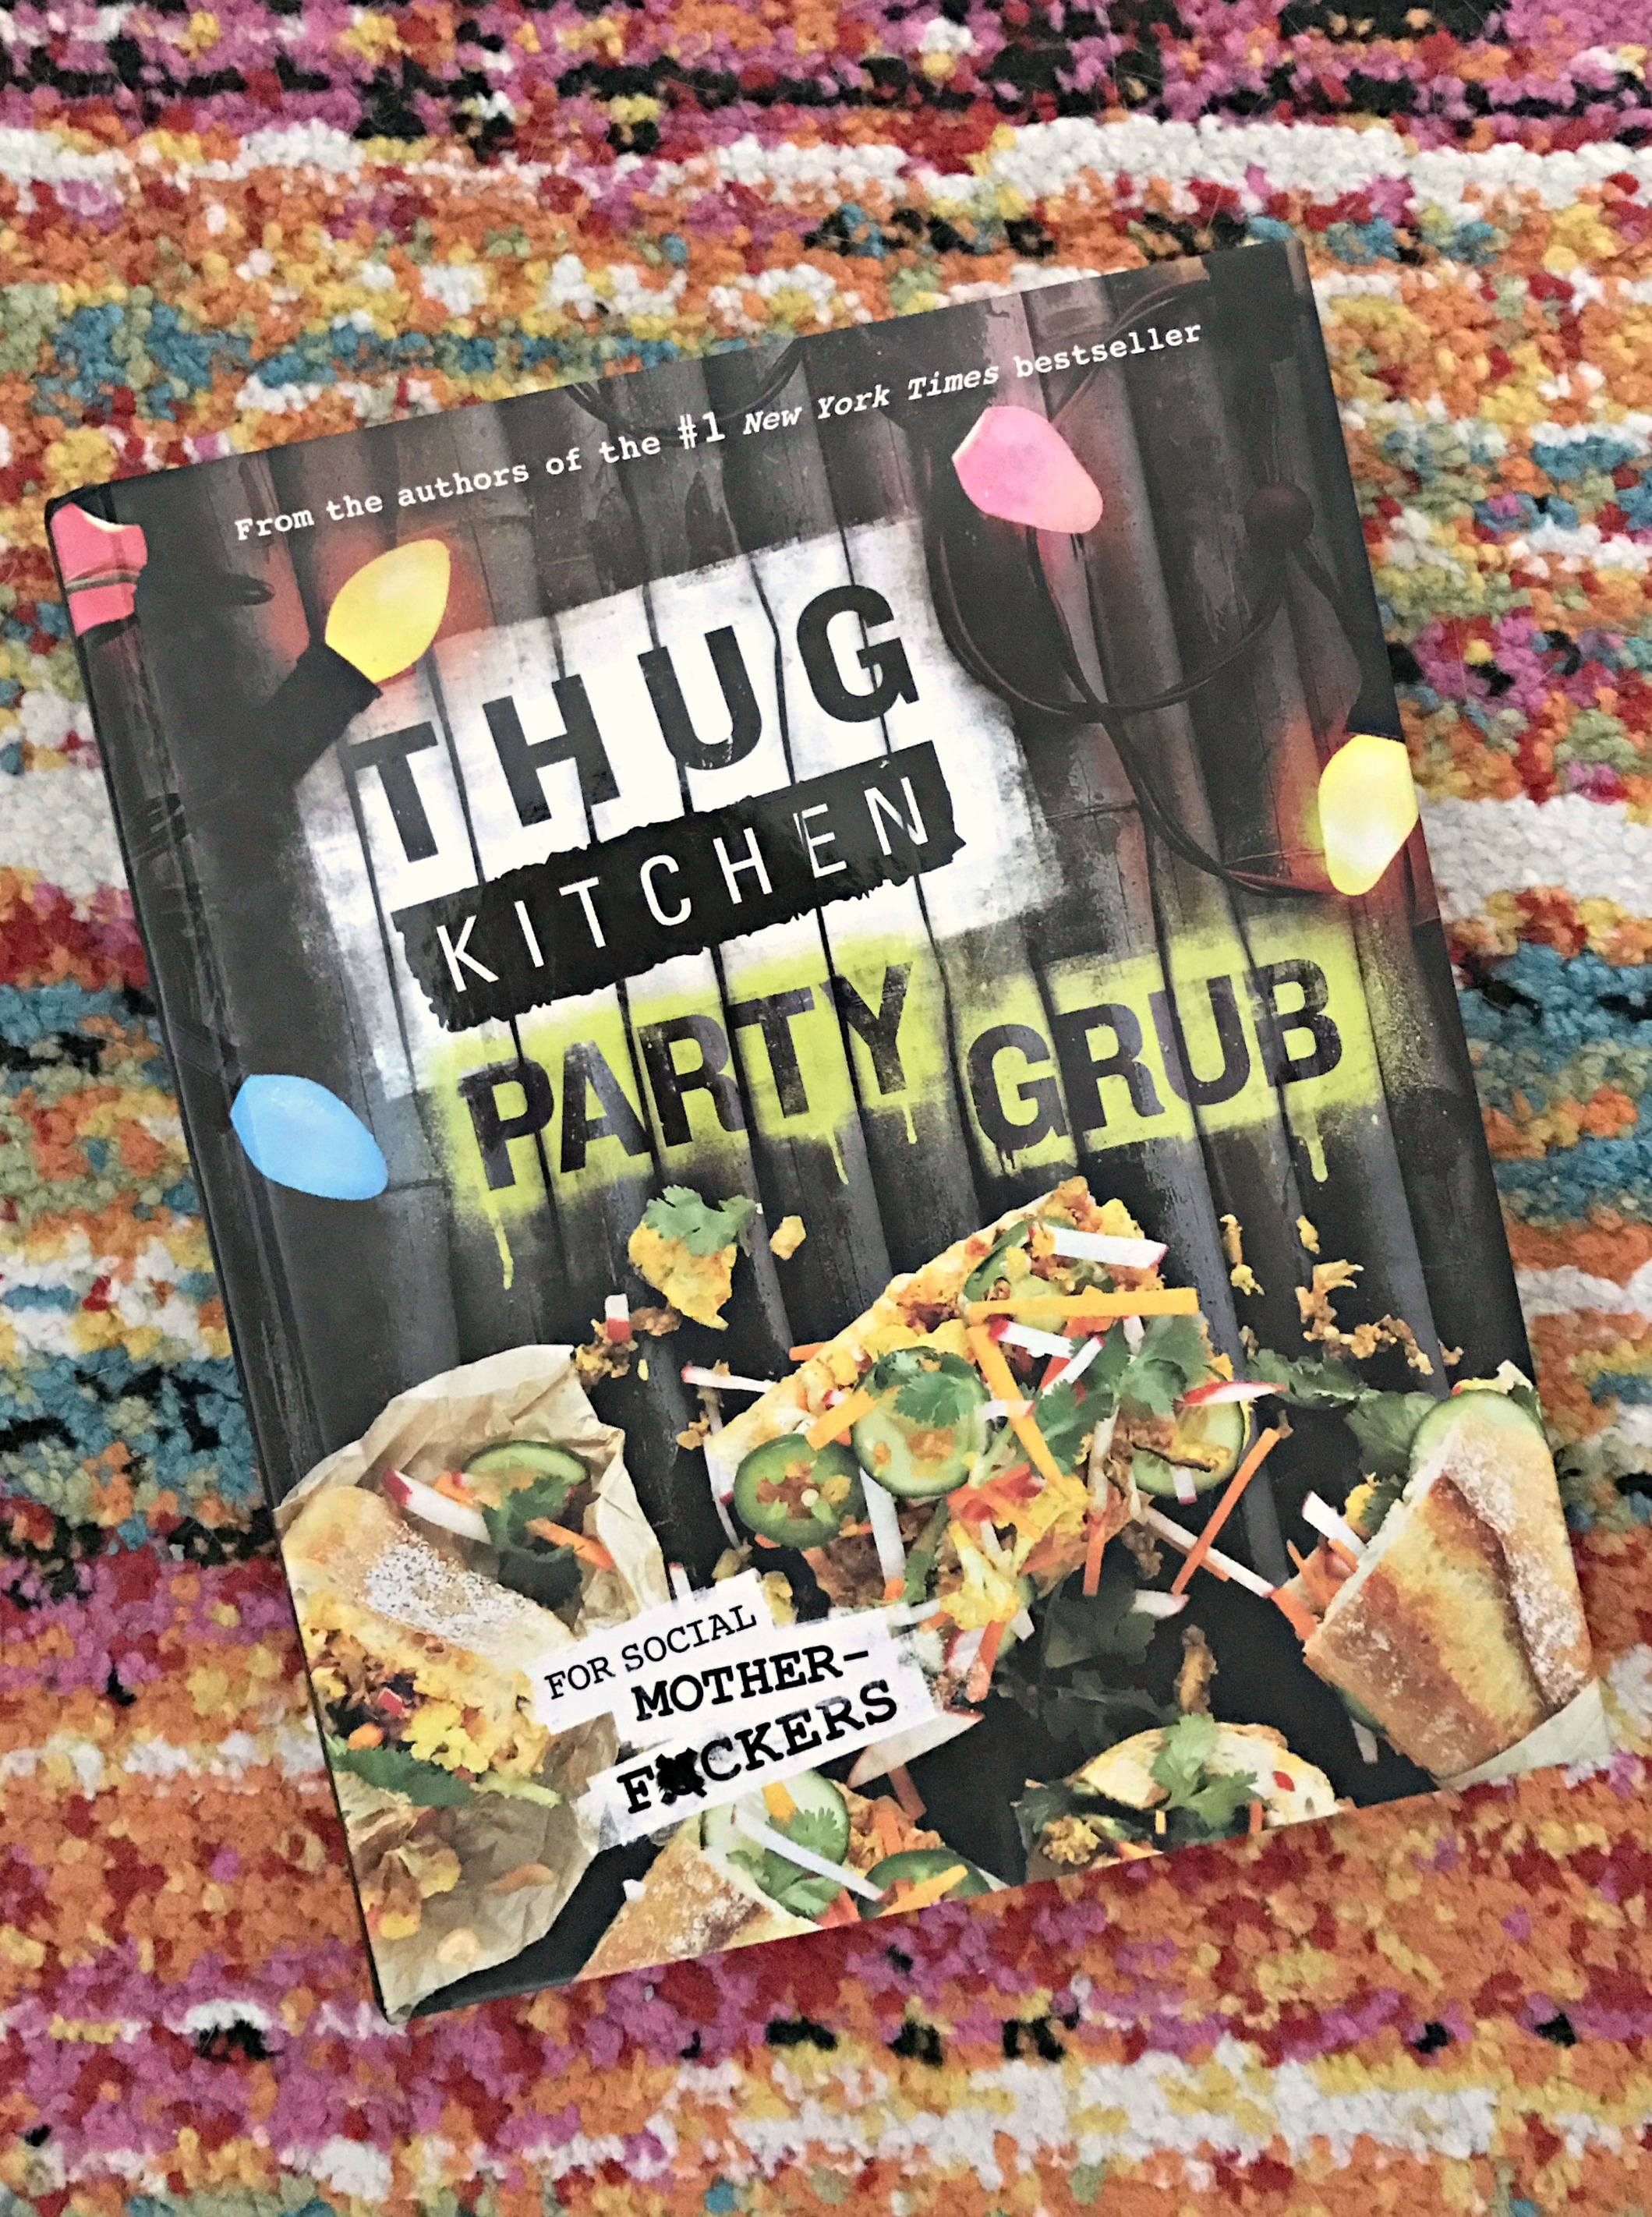 Thug Kitchen Party Grub cook book